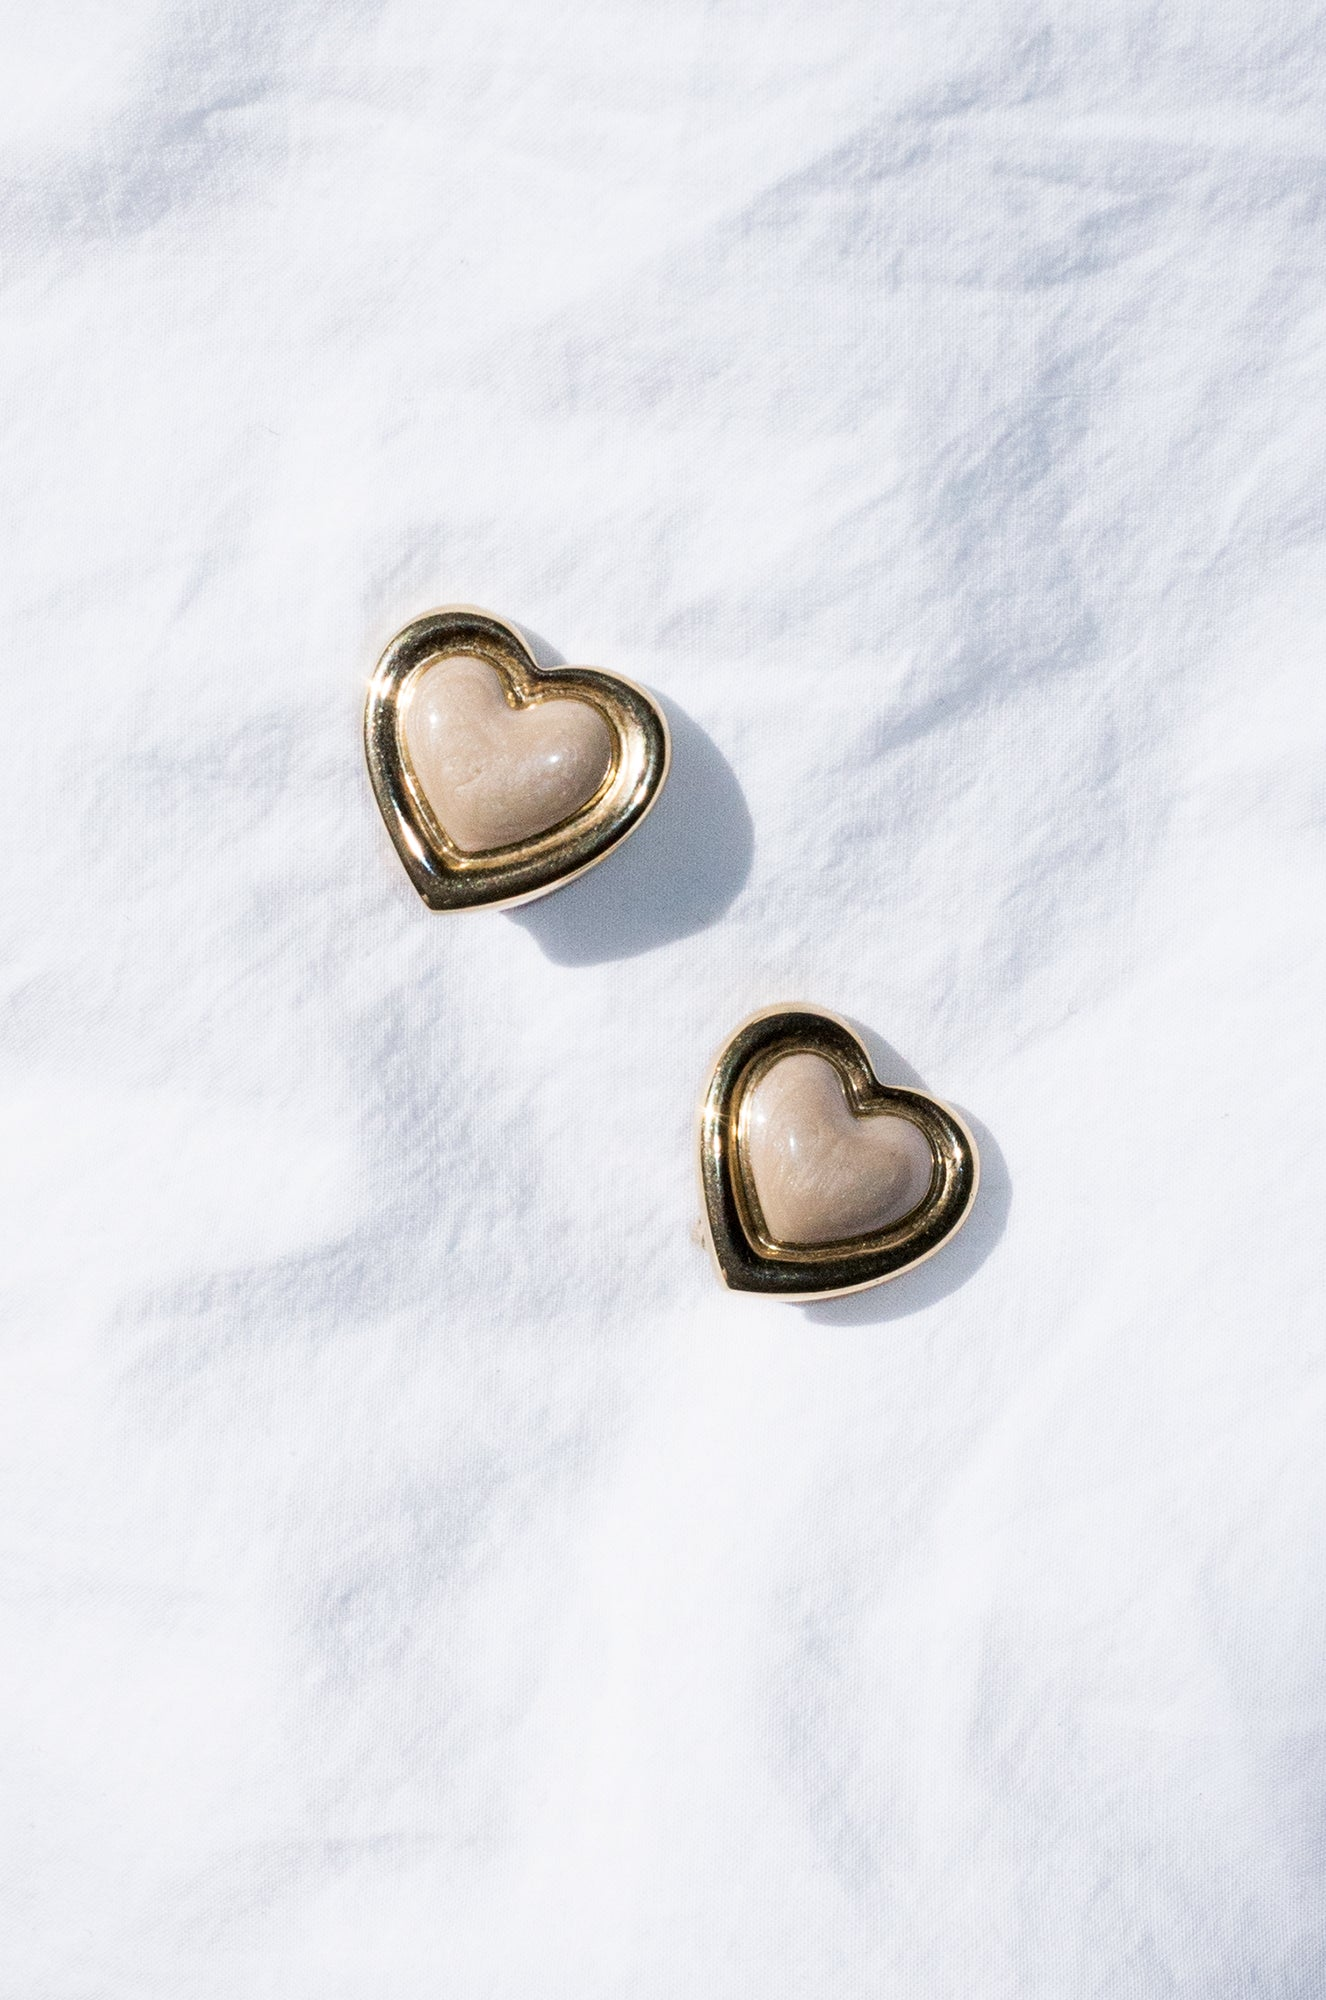 Vintage 1990s gold and taupe shimmer heart-shaped earrings